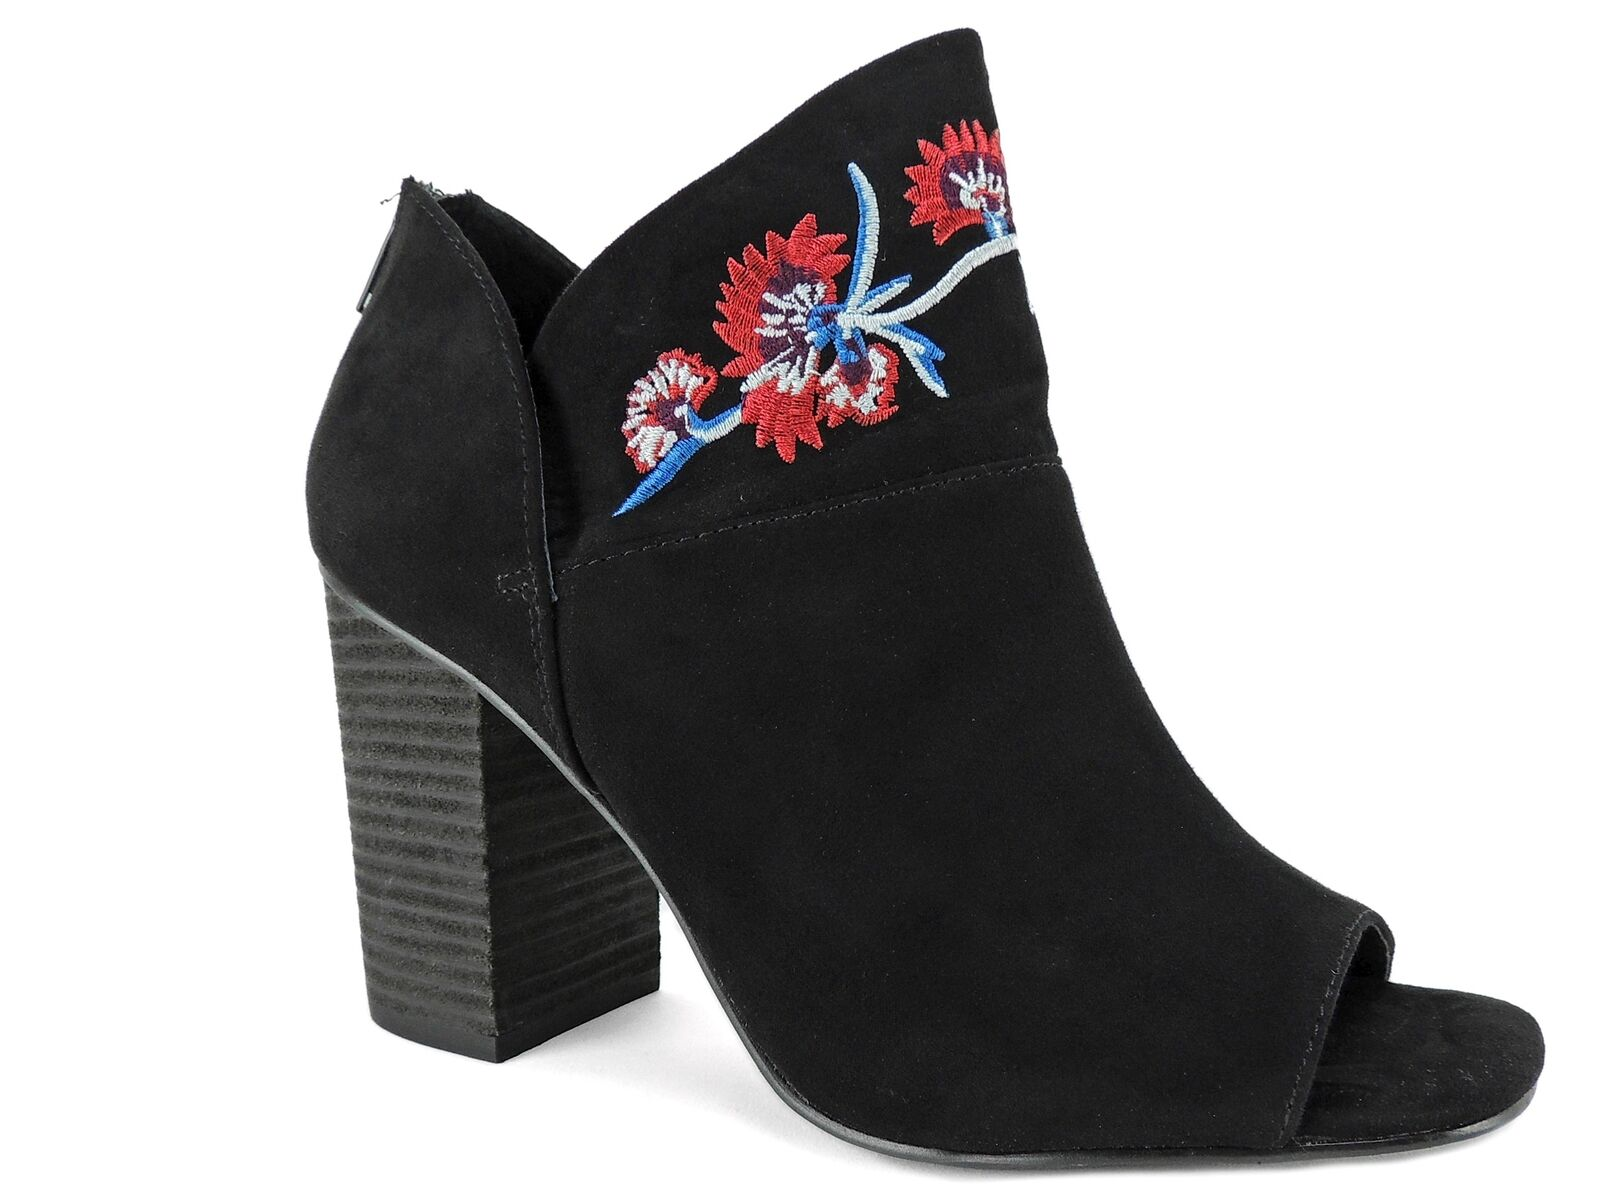 Carlos by Carlos Santana Women's Talana Embroidered Peep-Toe Booties Black 9 M